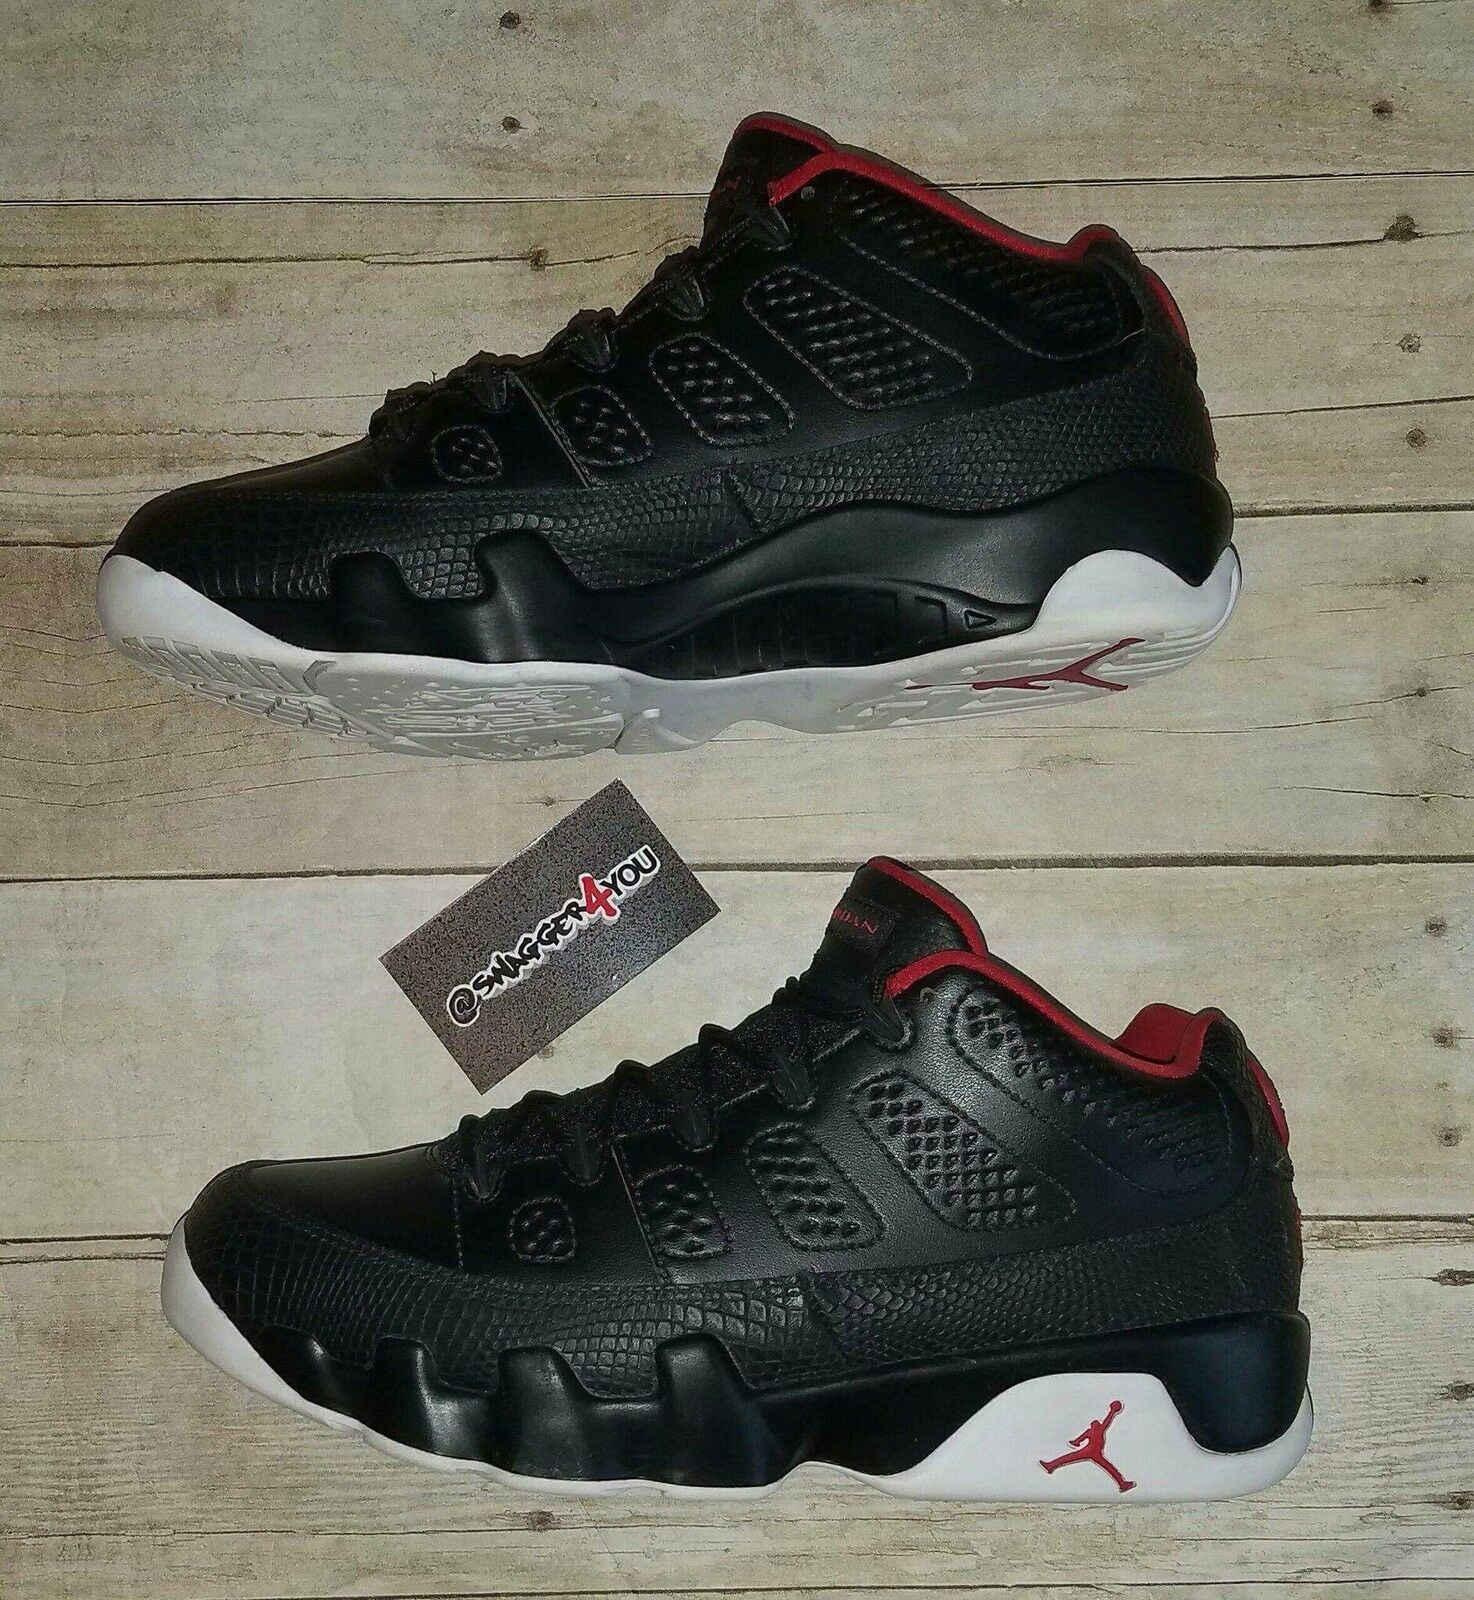 Nike Air Jordan Retro 9 IX Low Bred Black Snakeskin & Red Mens Price reduction New shoes for men and women, limited time discount